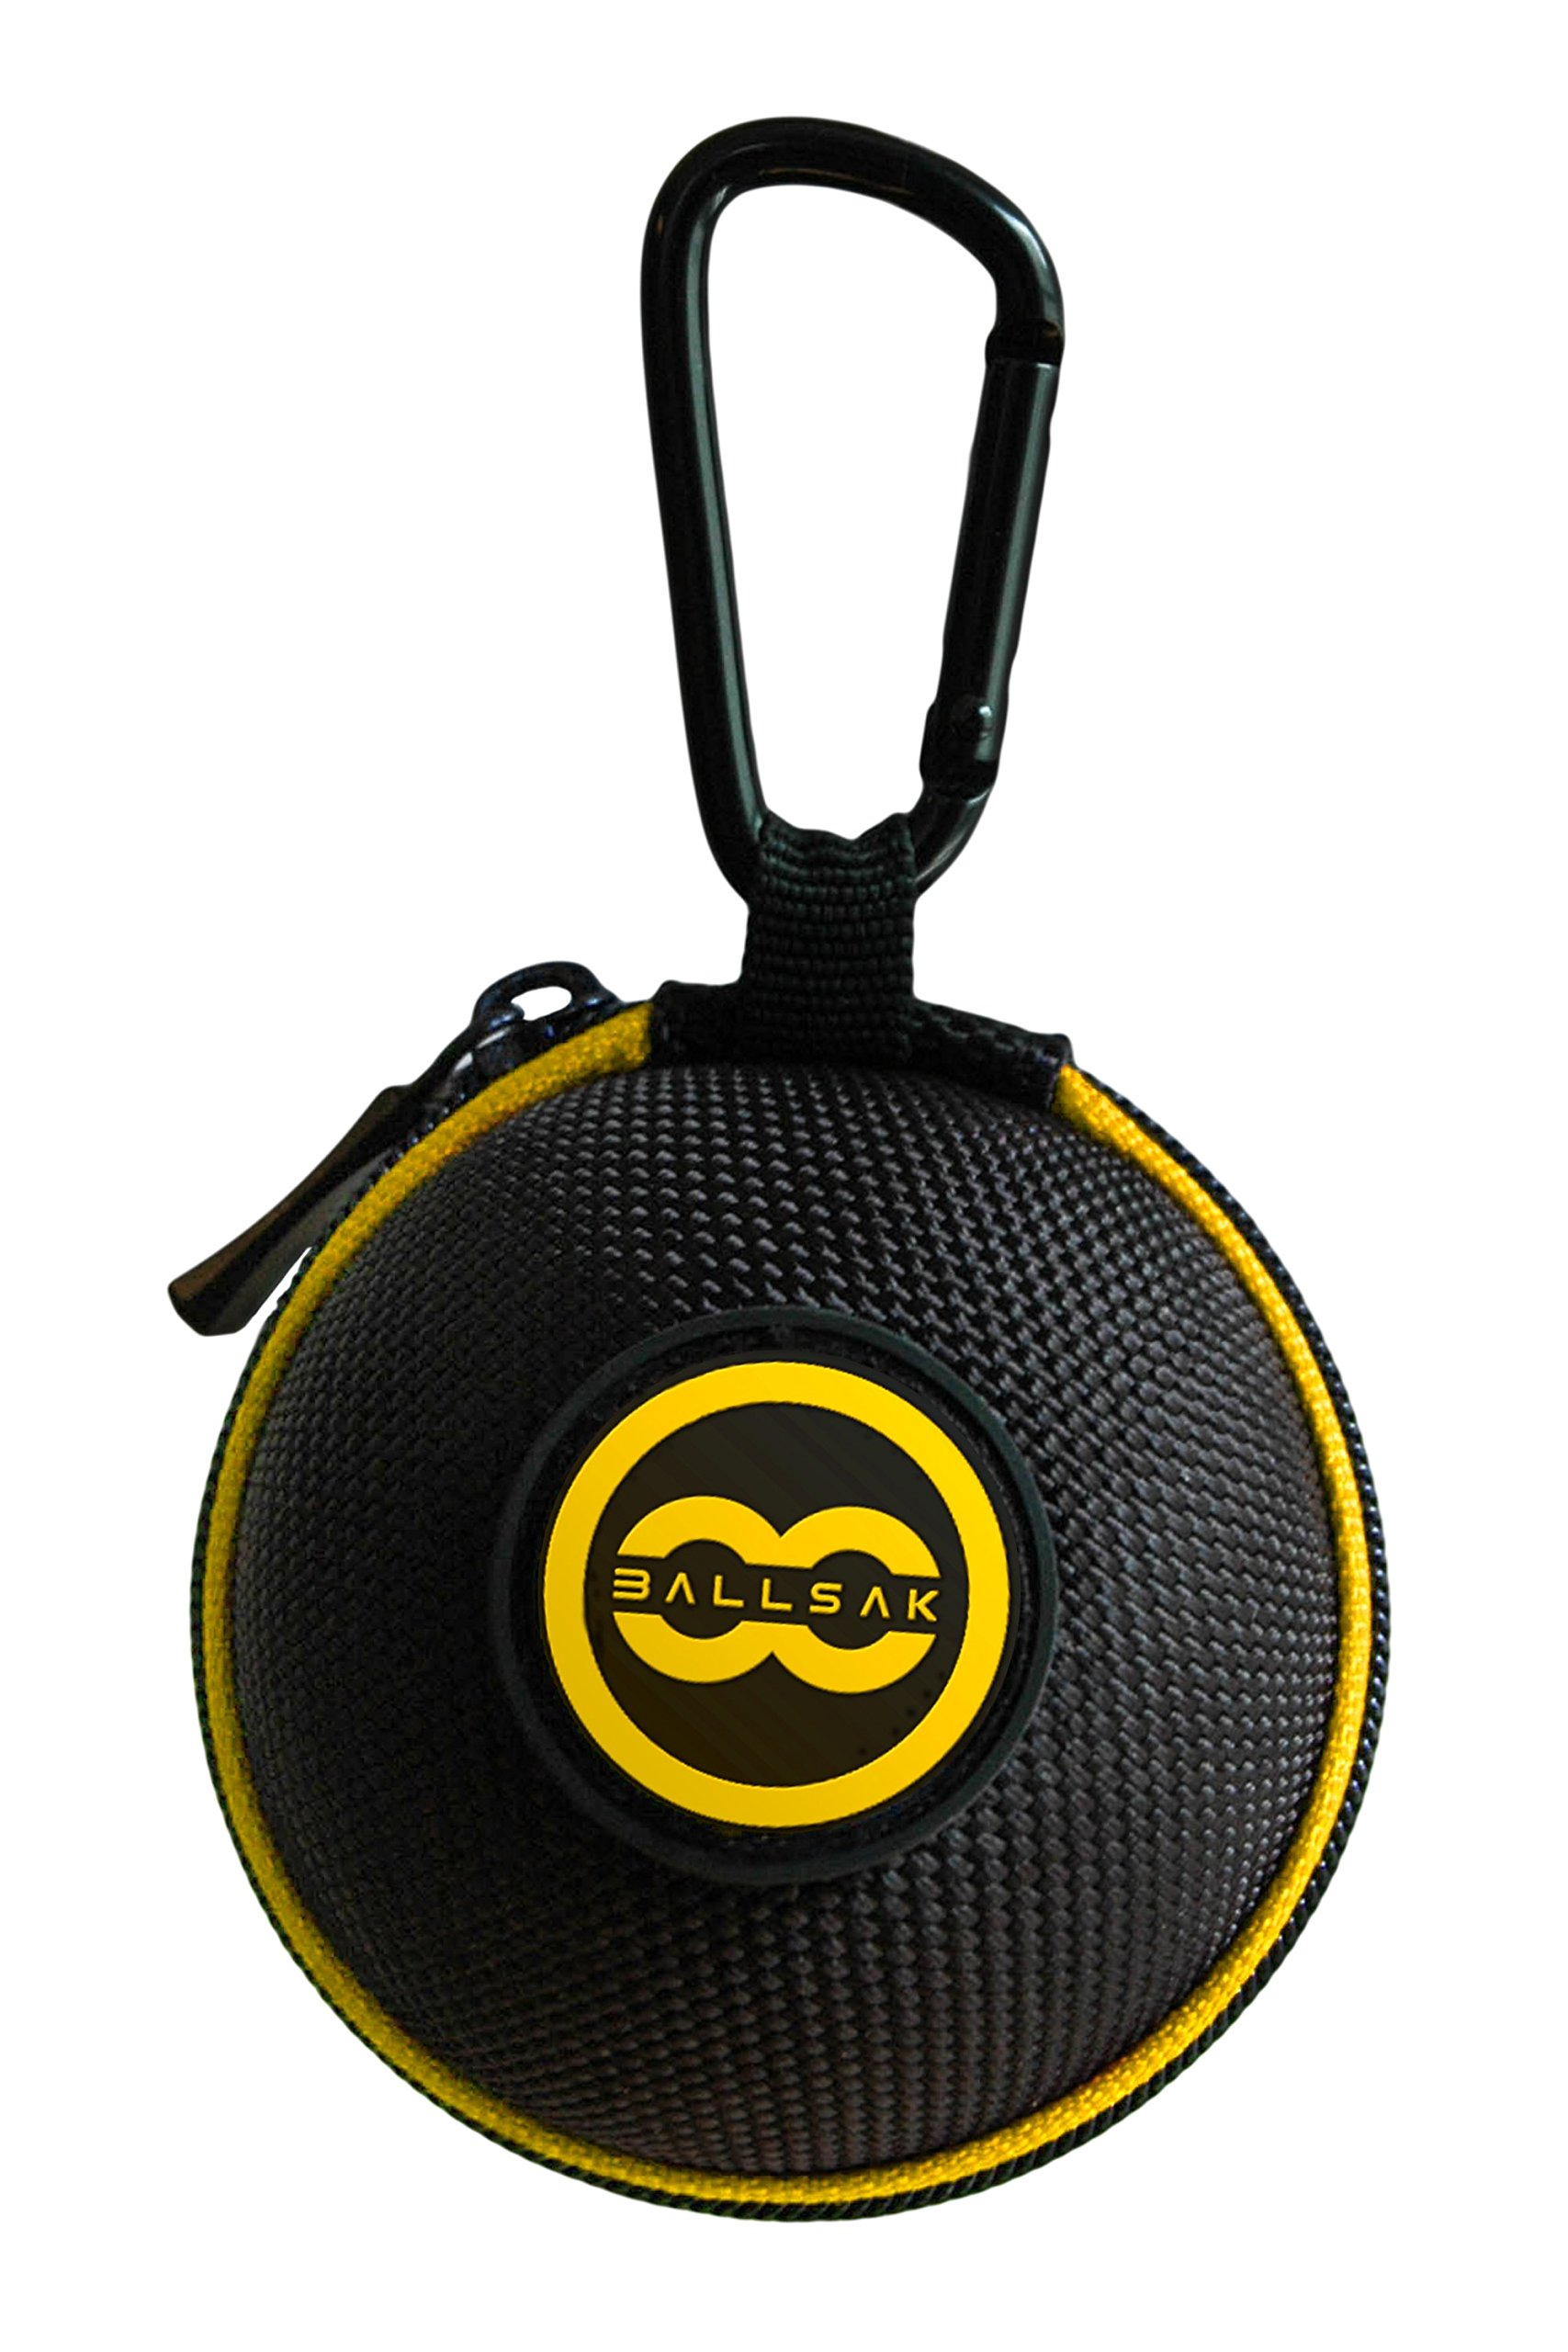 Ballsak Sport - Yellow/Black - Clip-on Cue Ball Case, Cue Ball Bag for Attaching Cue Balls, Pool Balls, Billiard Balls, Training Balls to Your Cue Stick Bag EXTRA STRONG STRAP DESIGN!